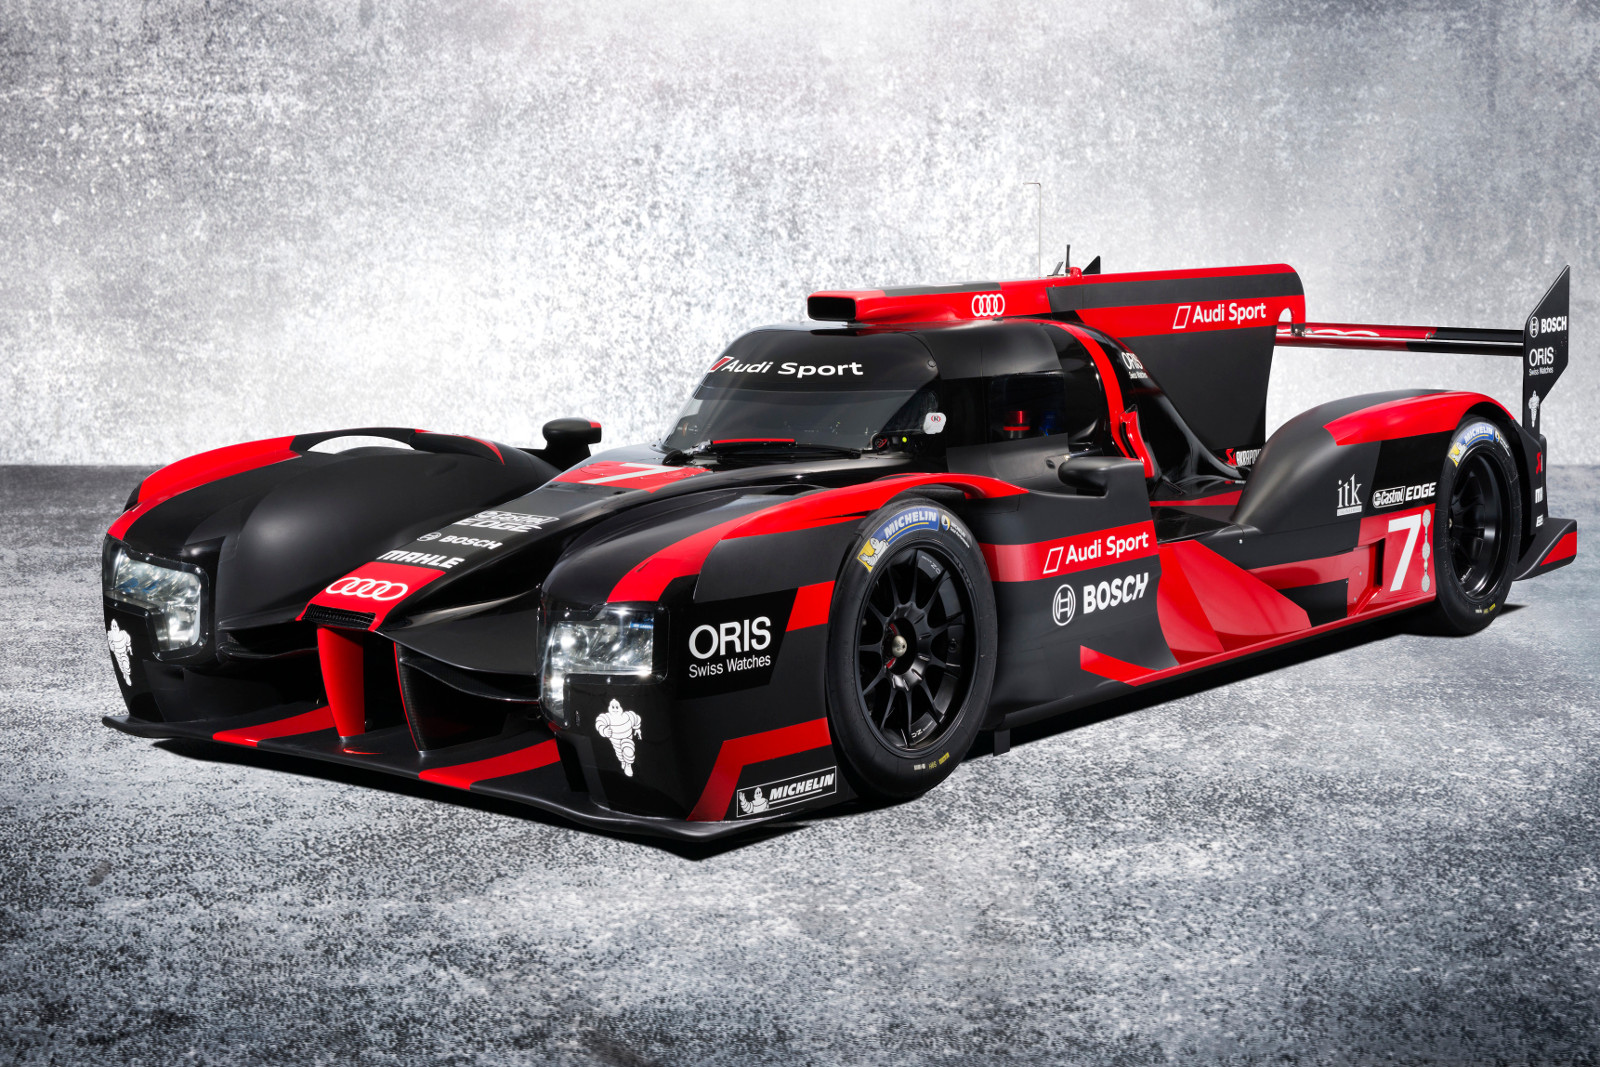 2016 Audi R18 e-tron quattro Le Mans Prototype Is Against All Odds ...